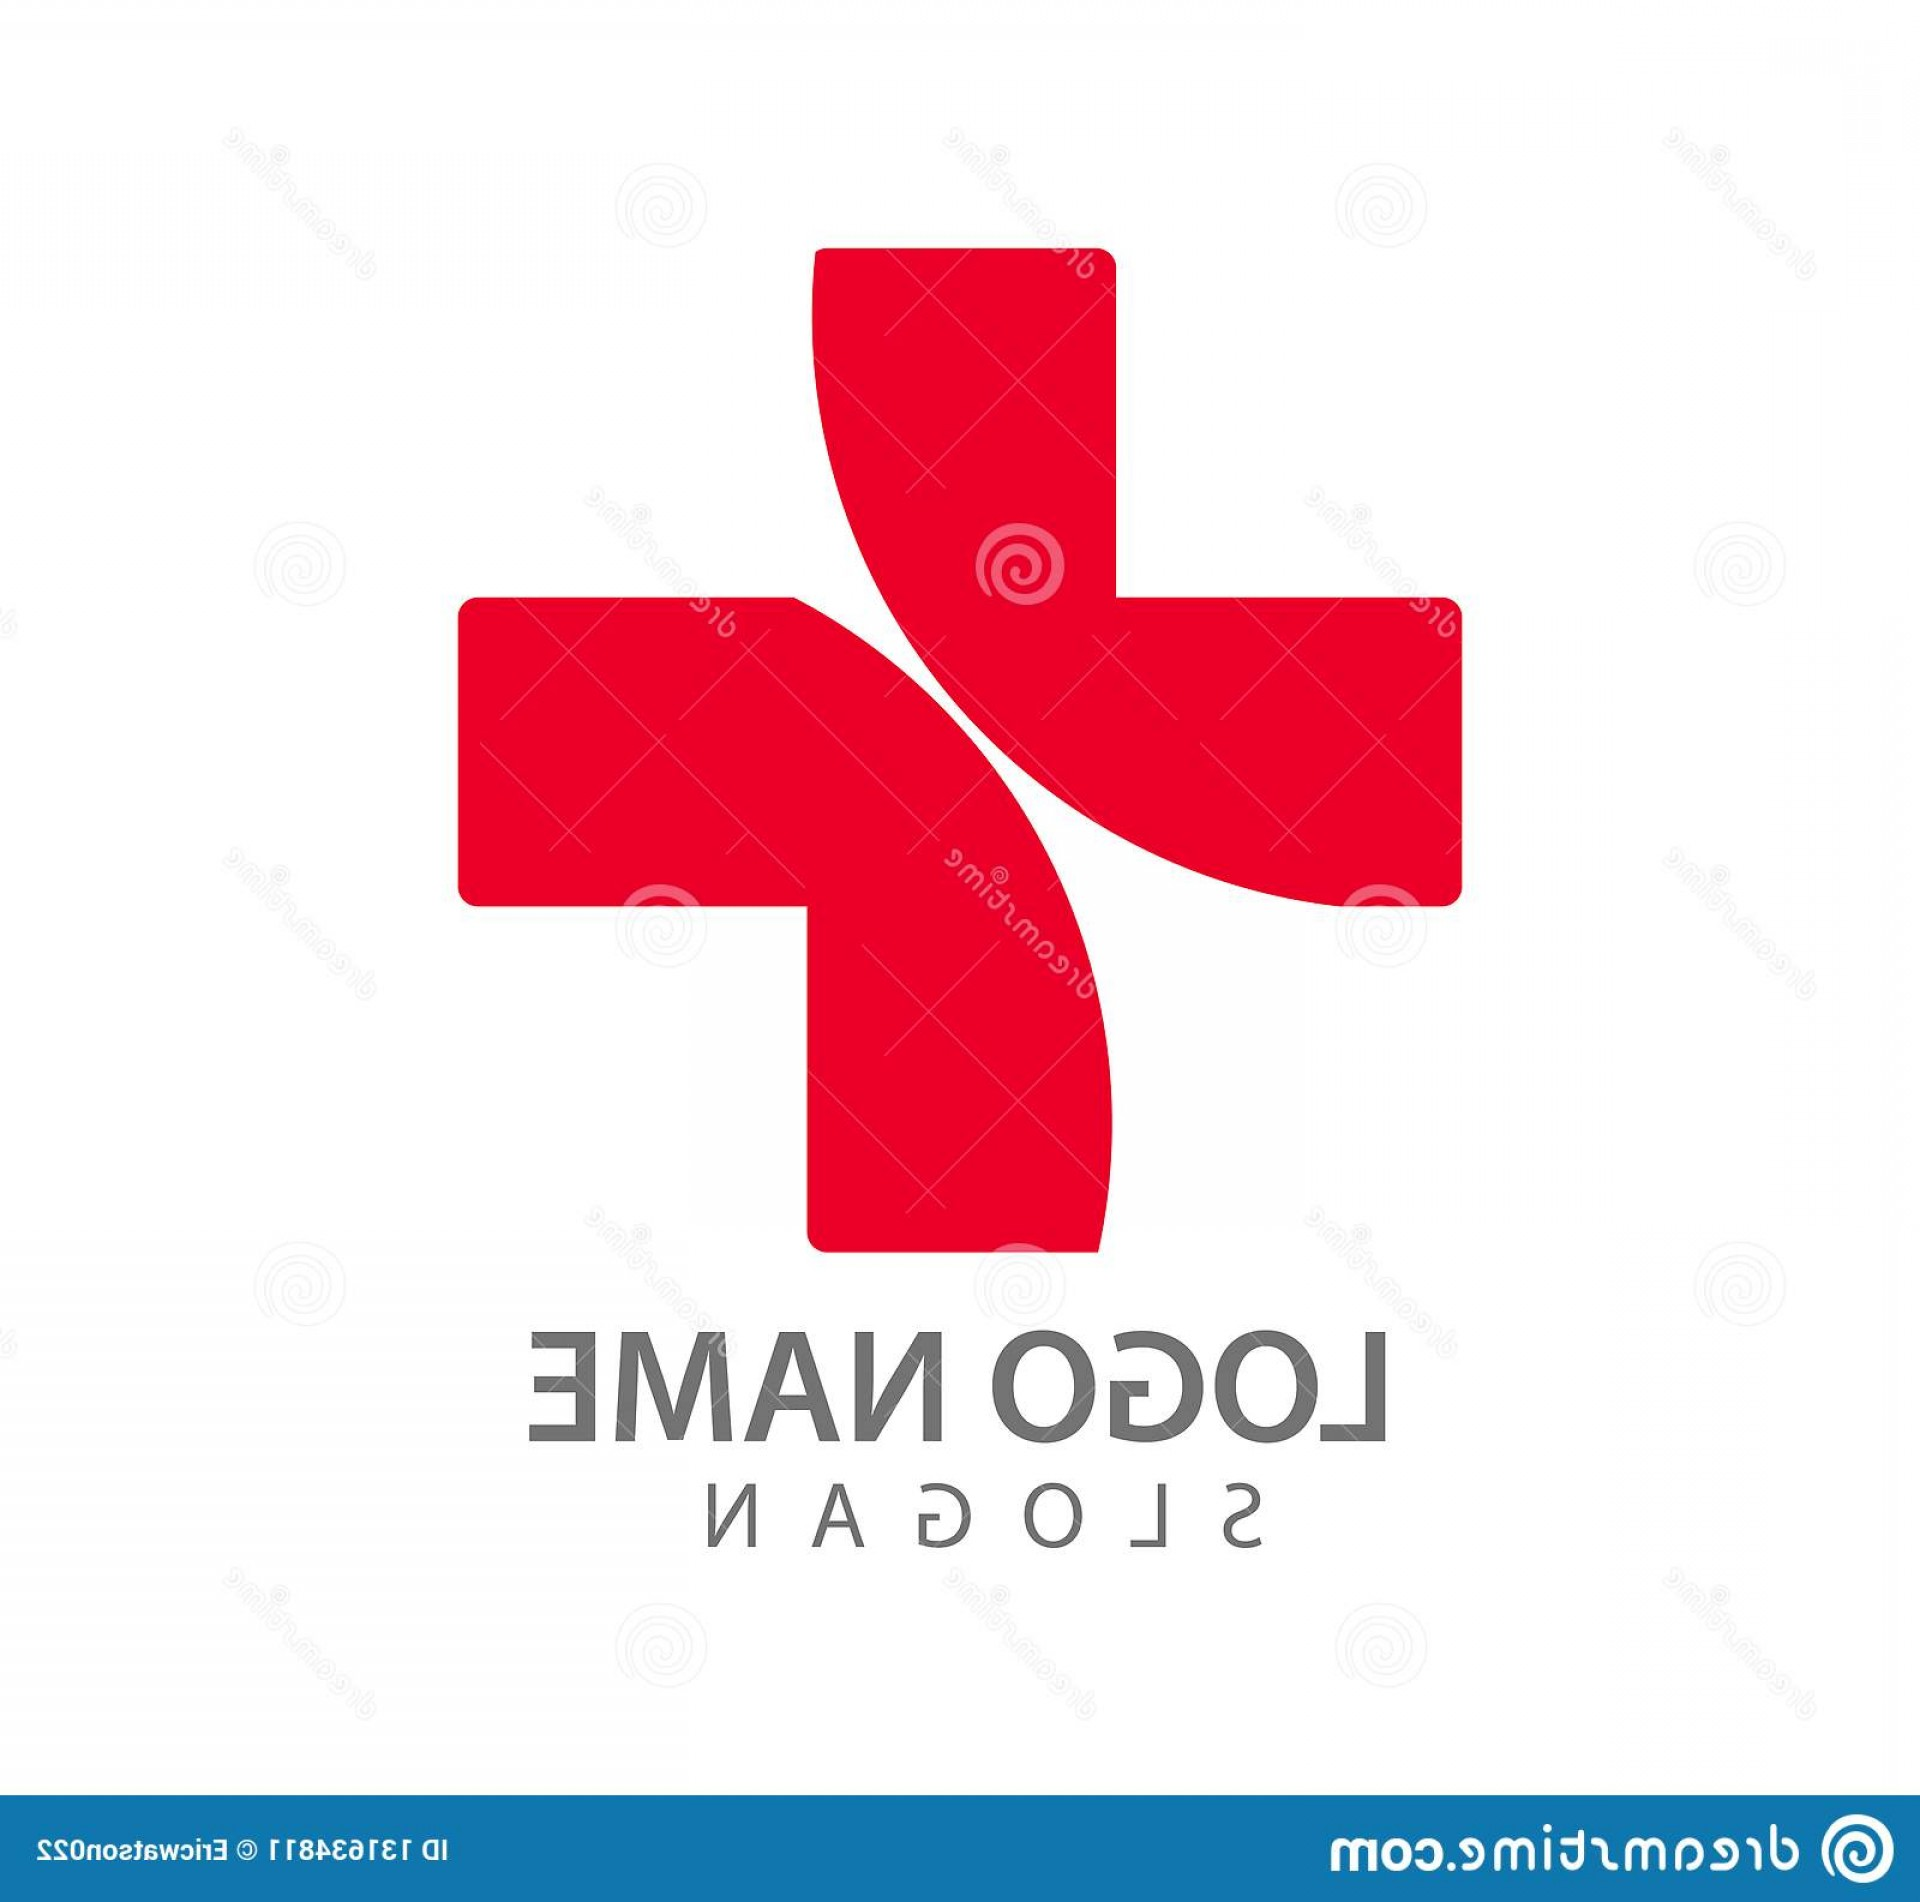 YouTube RedVector Real Life: Hospital Logo Red Vector Icons Doctor Graphic Hospital Logo Red Vector Icons Doctor Graphic Logo Name Text Image